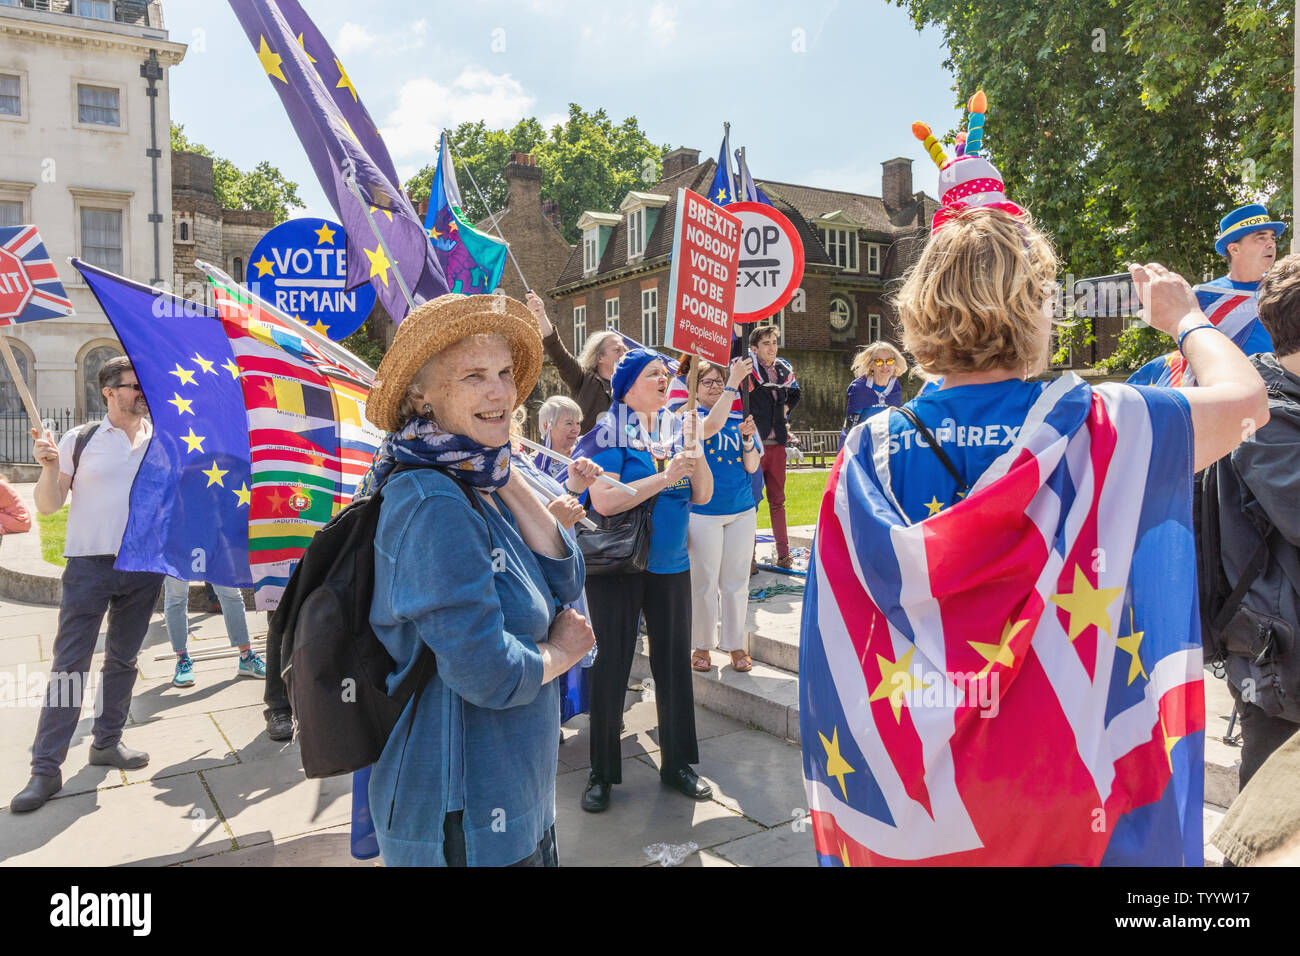 London / UK - June 26th 2019 - Pro-EU anti-Brexit protesters holding European Union flags and stop Brexit signs outside Parliament in Westminster - Stock Image